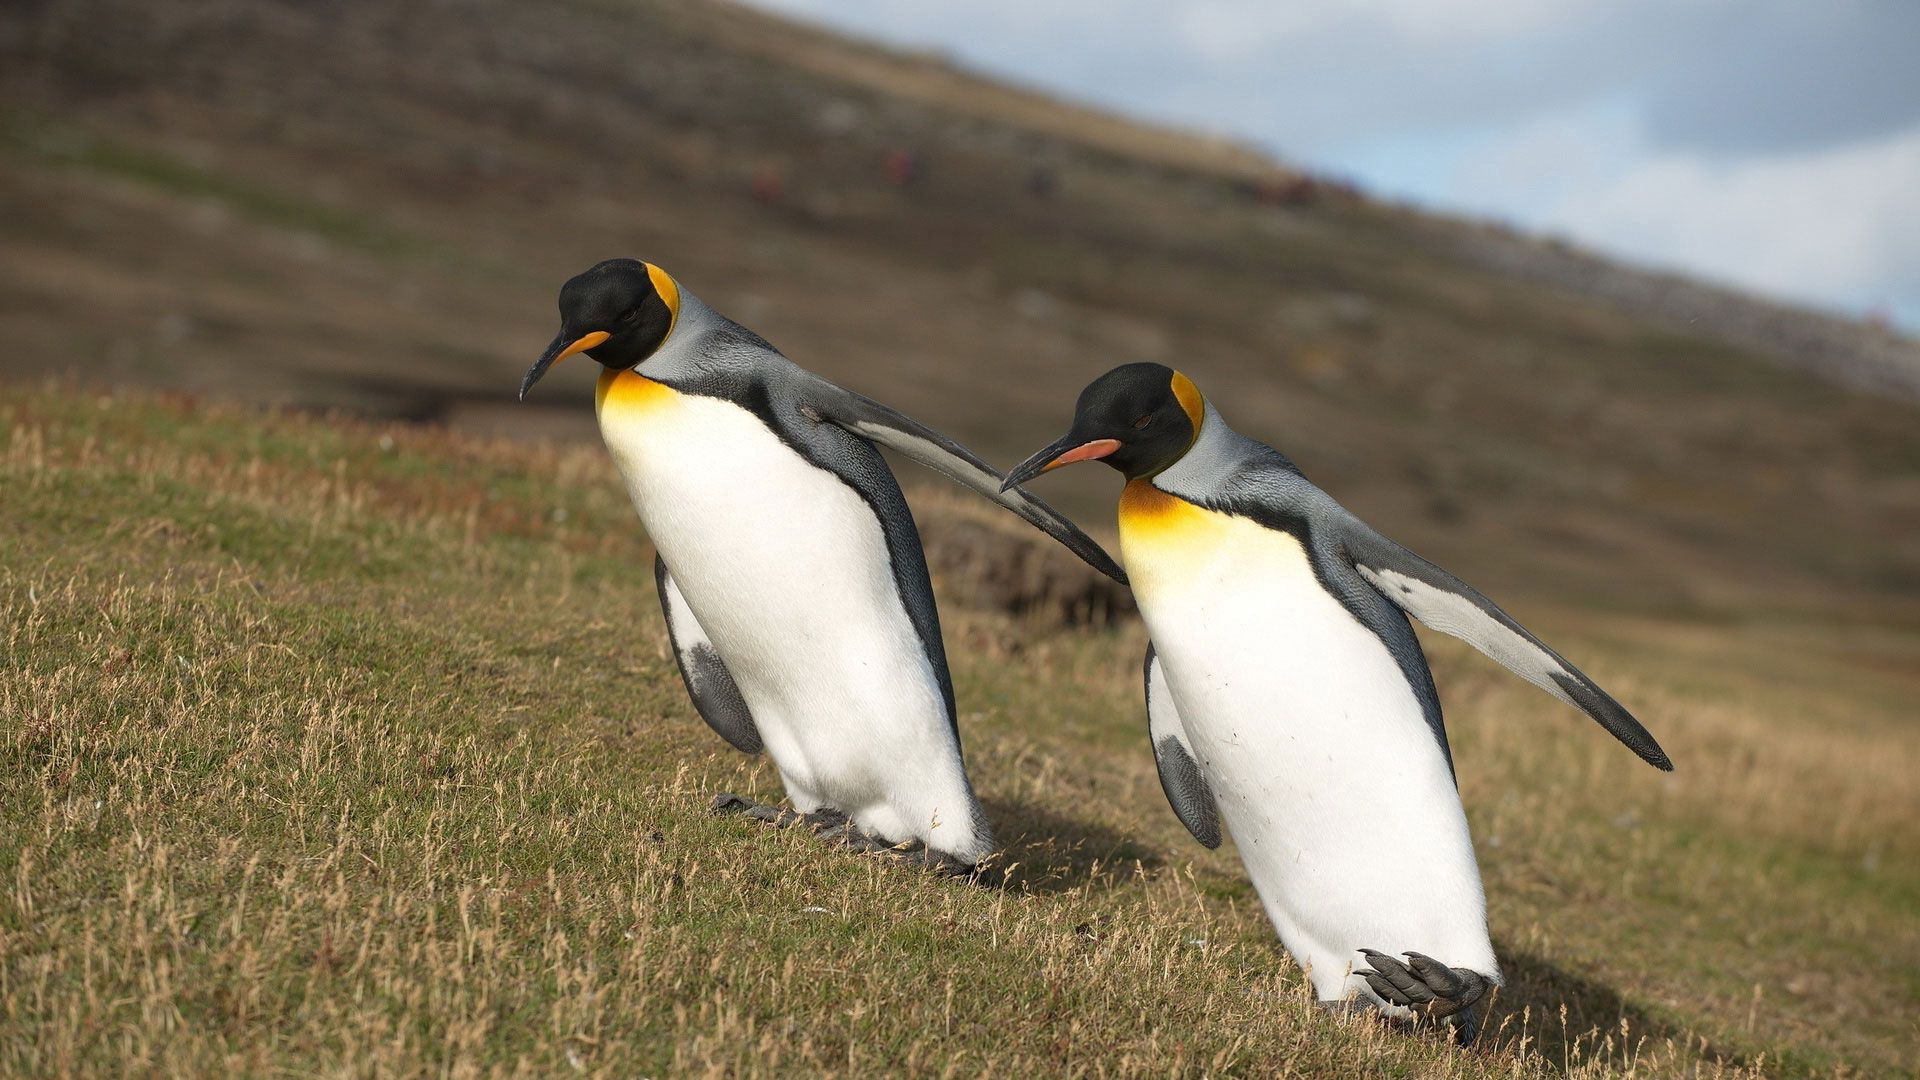 131081 download wallpaper Animals, Pinguins, Grass, Mountain, Wings, Slope screensavers and pictures for free